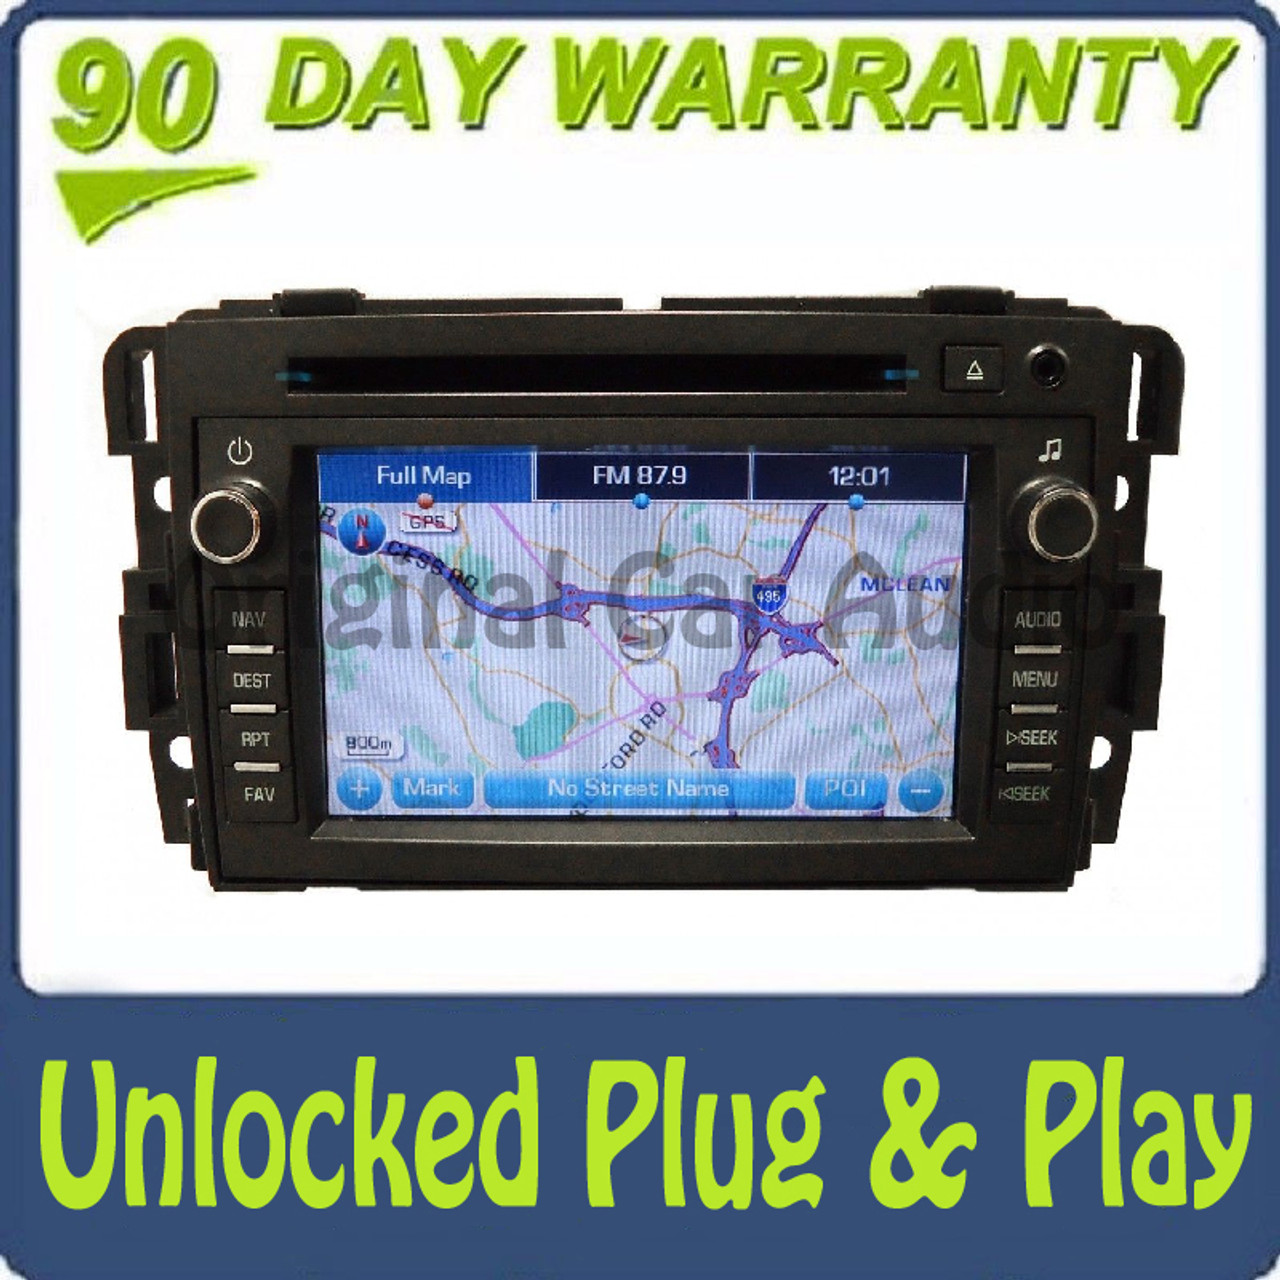 08 09 2010 2011 2012 Buick Enclave Navigation Radio Cd Playerrhcd4car: Buick Navigation System With Audio At Gmaili.net